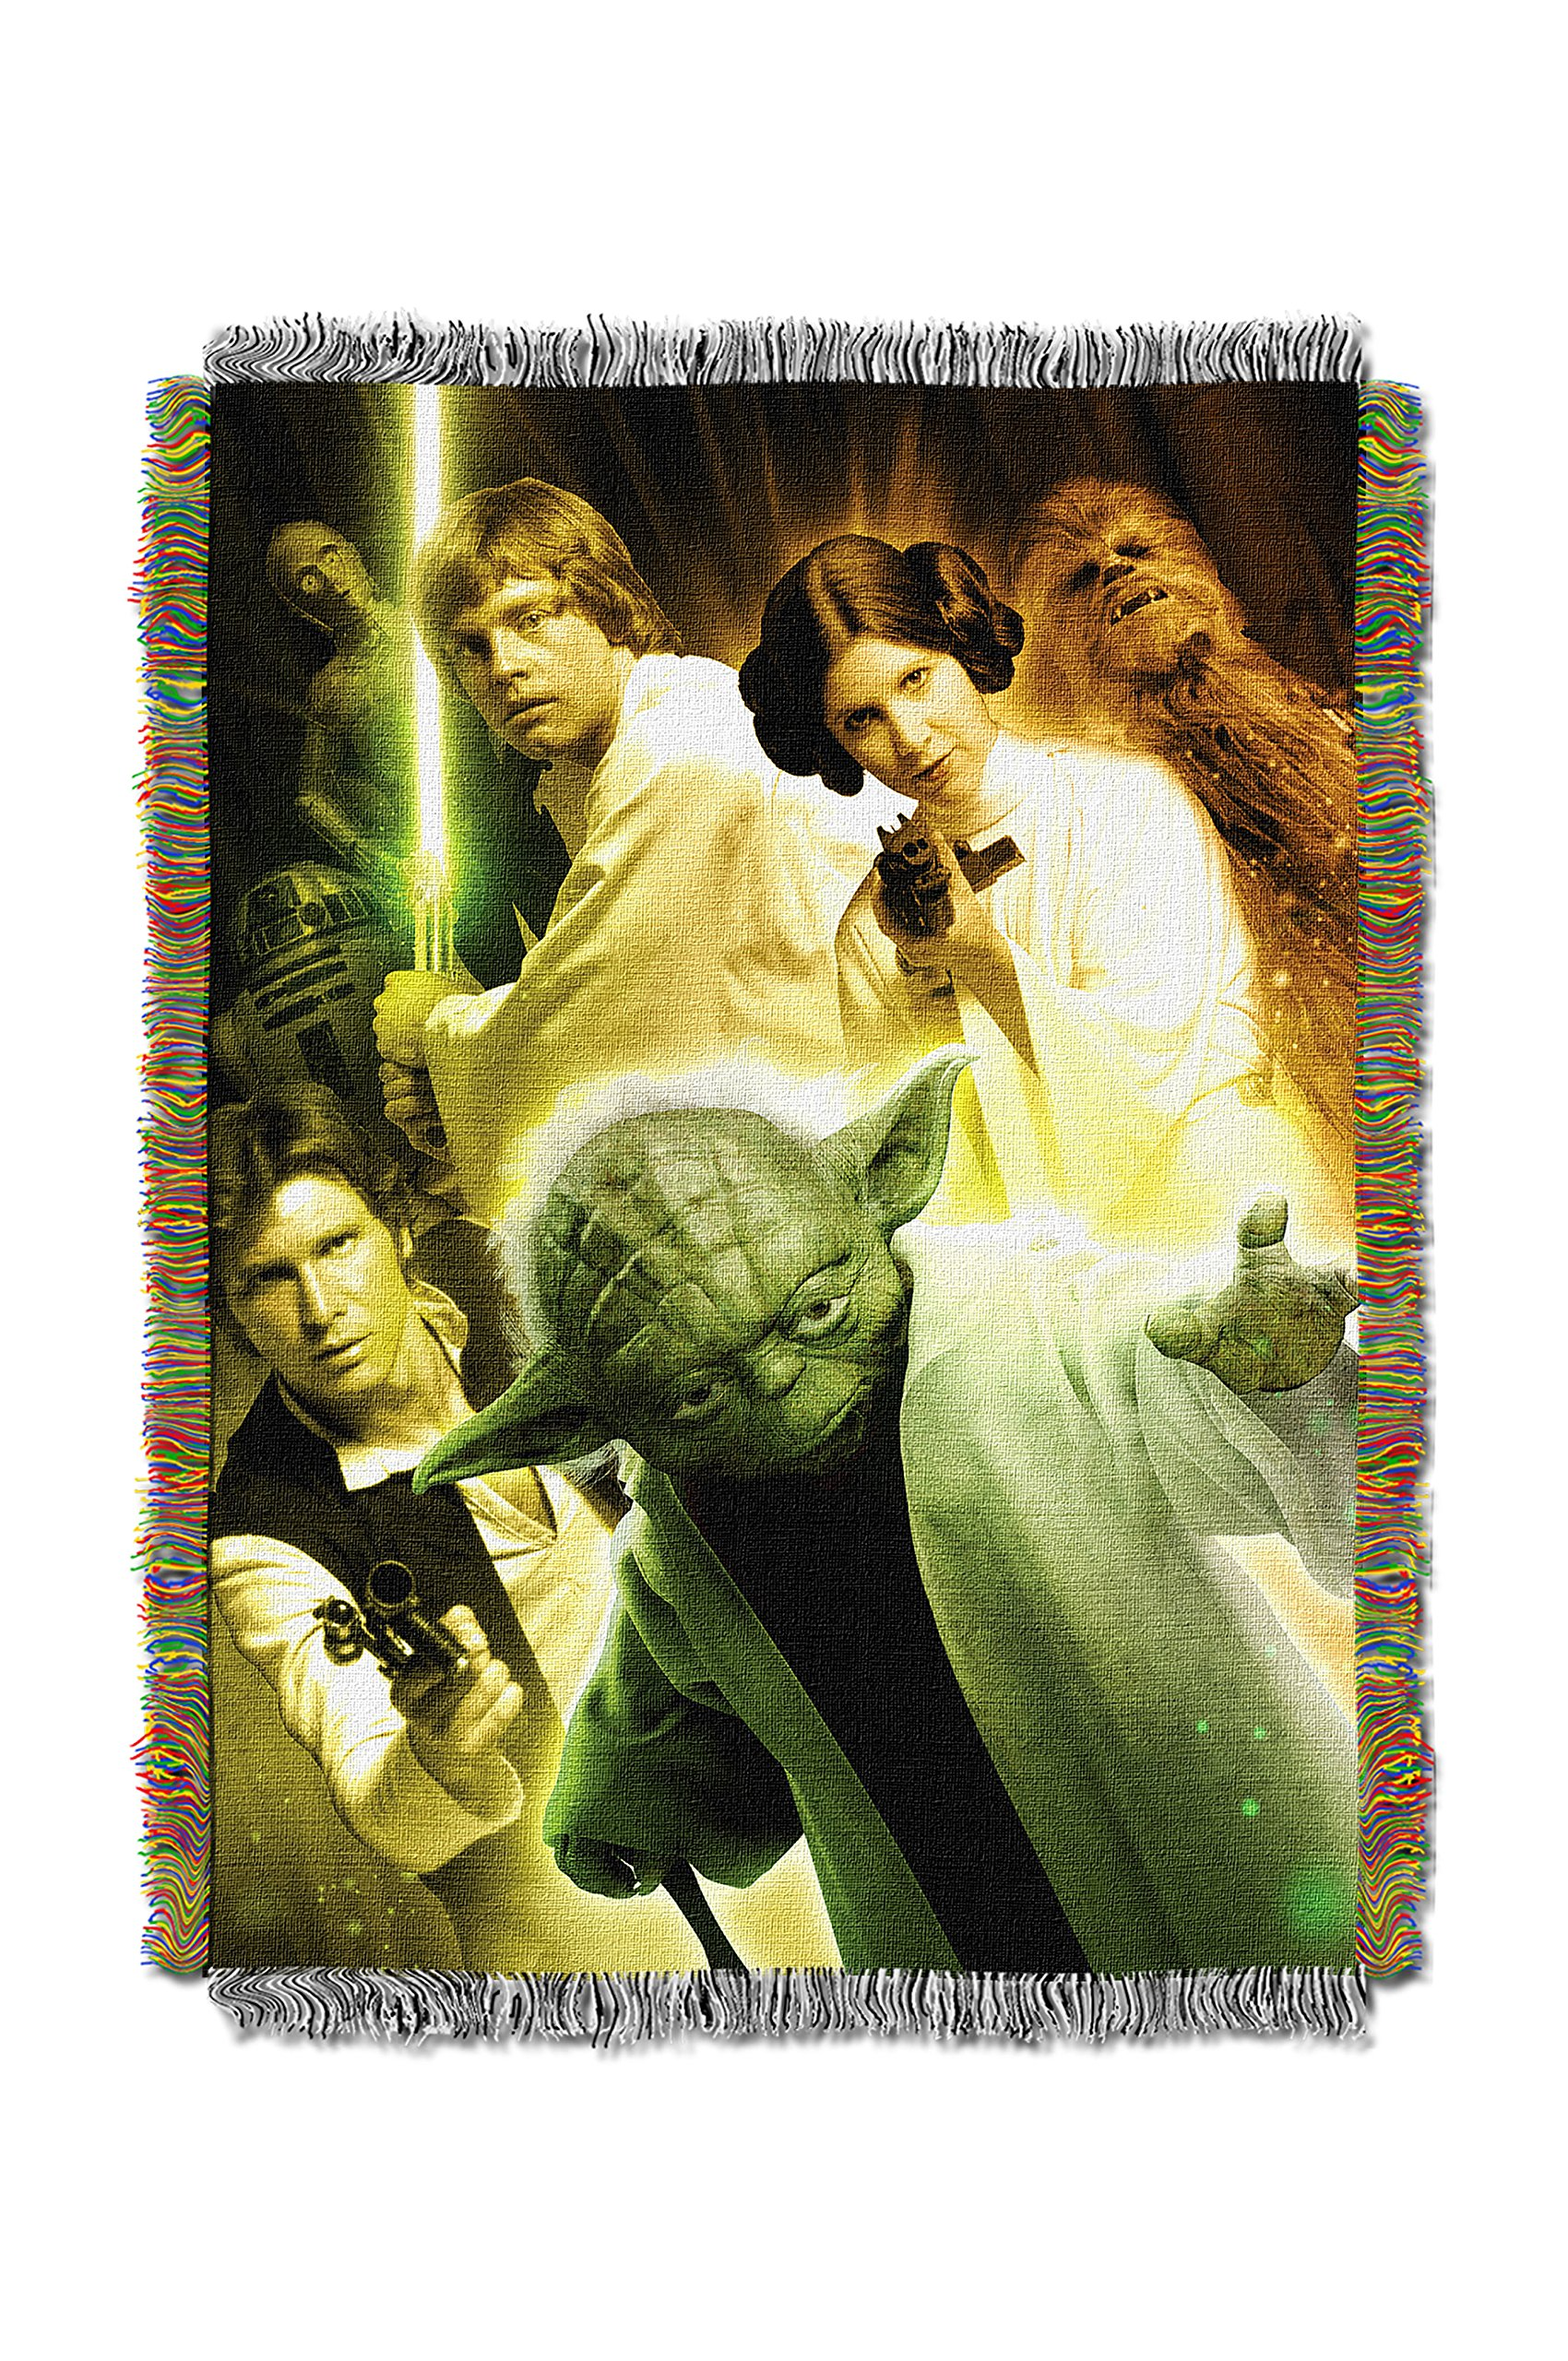 Disney's Star Wars, ''Small Rebel Force'' Woven Tapestry Throw Blanket, 48'' x 60'', Multi Color